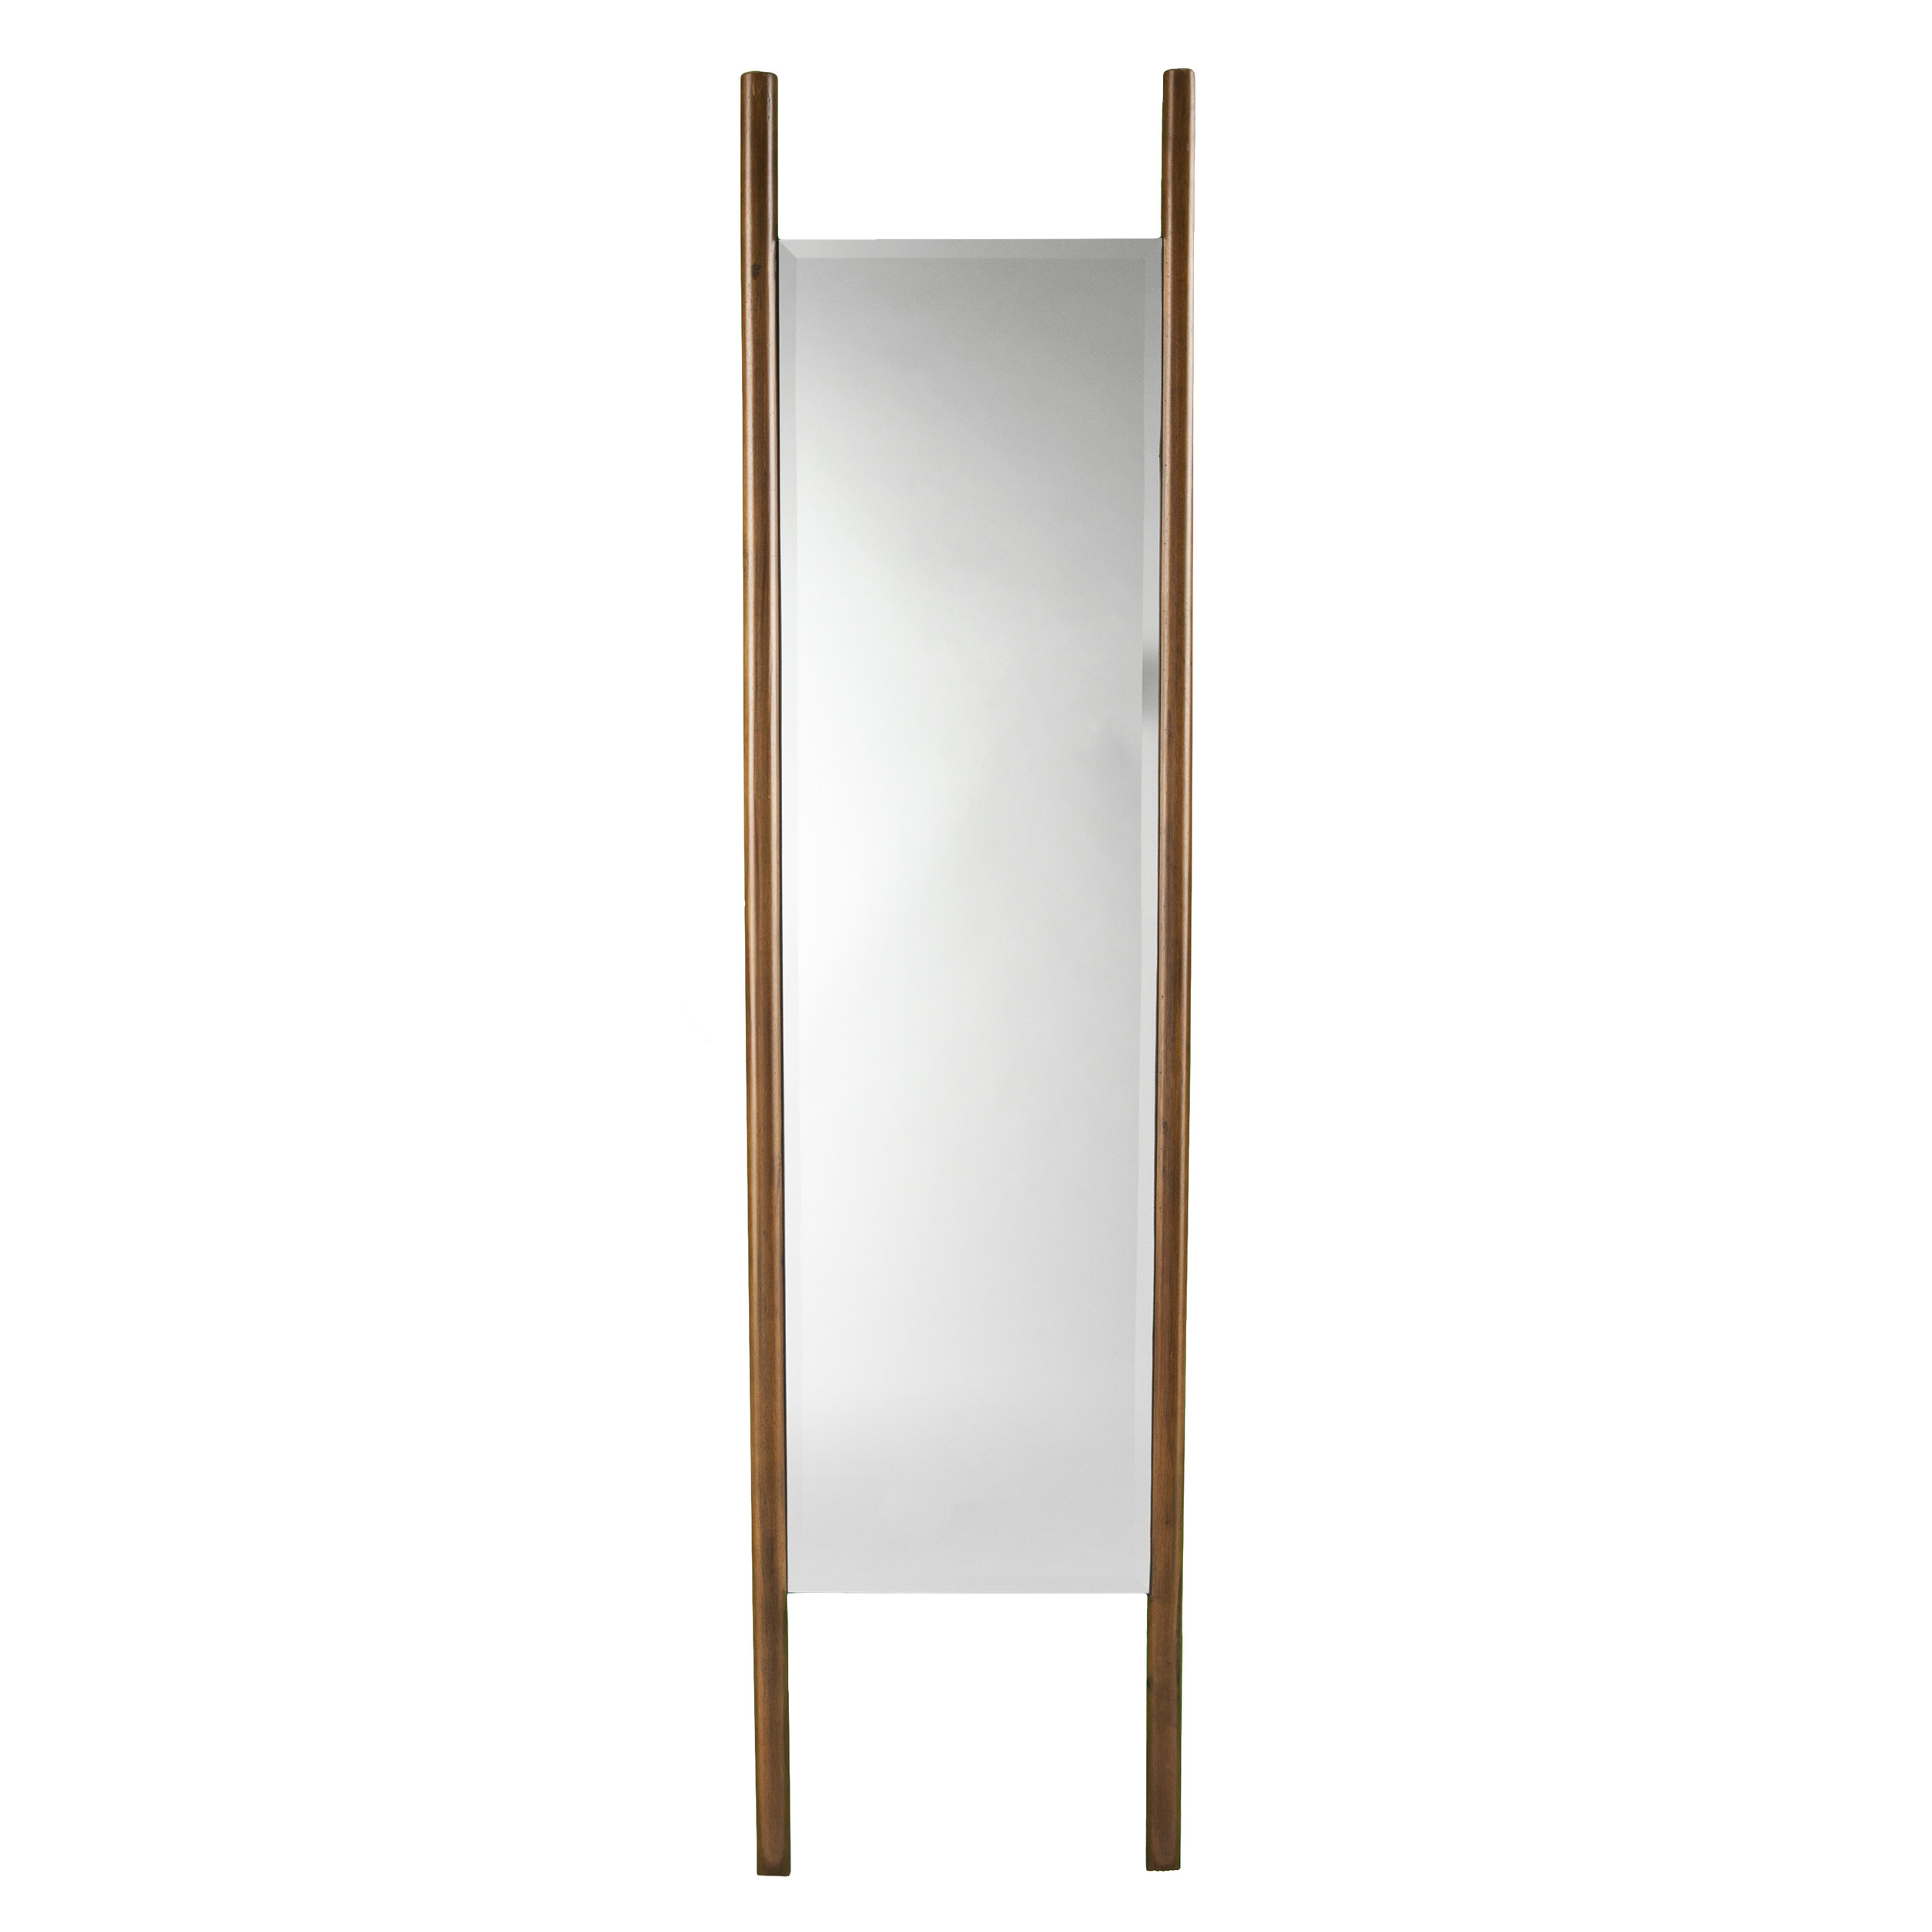 Cressida Full Length Mirror & Reviews | Allmodern regarding Jameson Modern & Contemporary Full Length Mirrors (Image 5 of 30)